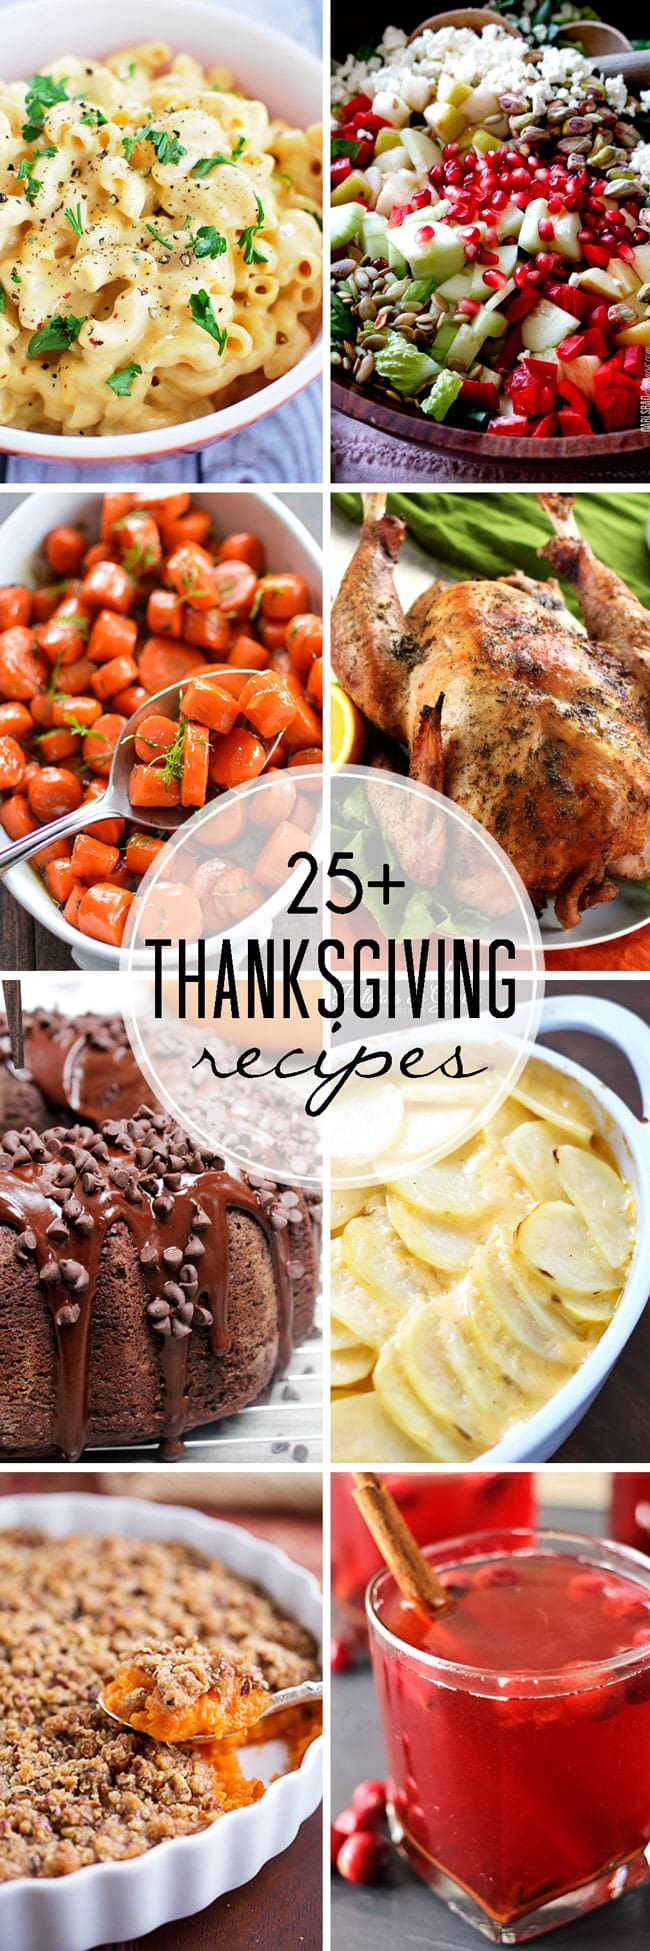 25 Thanksgiving Recipes That Skinny Chick Can Bake